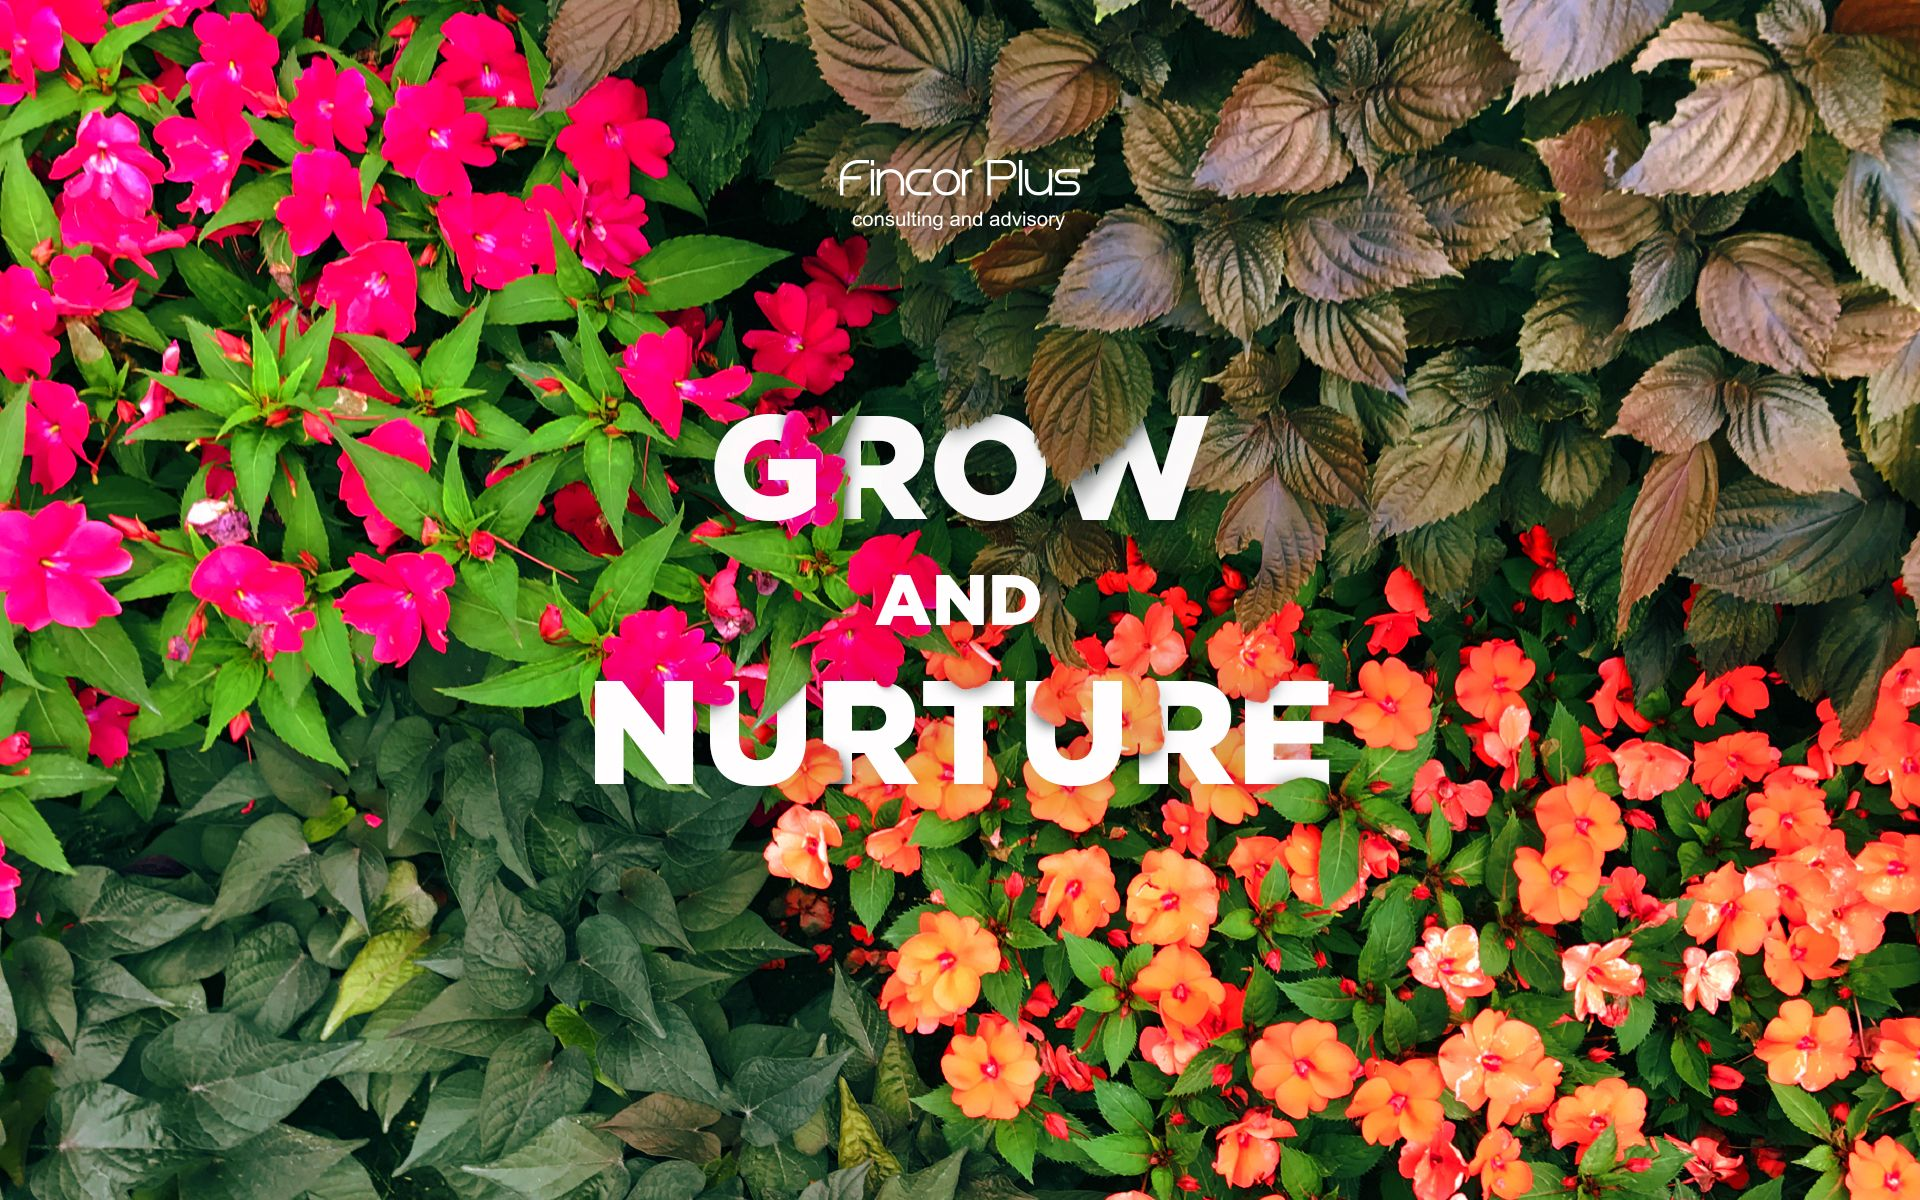 Grow-and-nurture-wallpaper